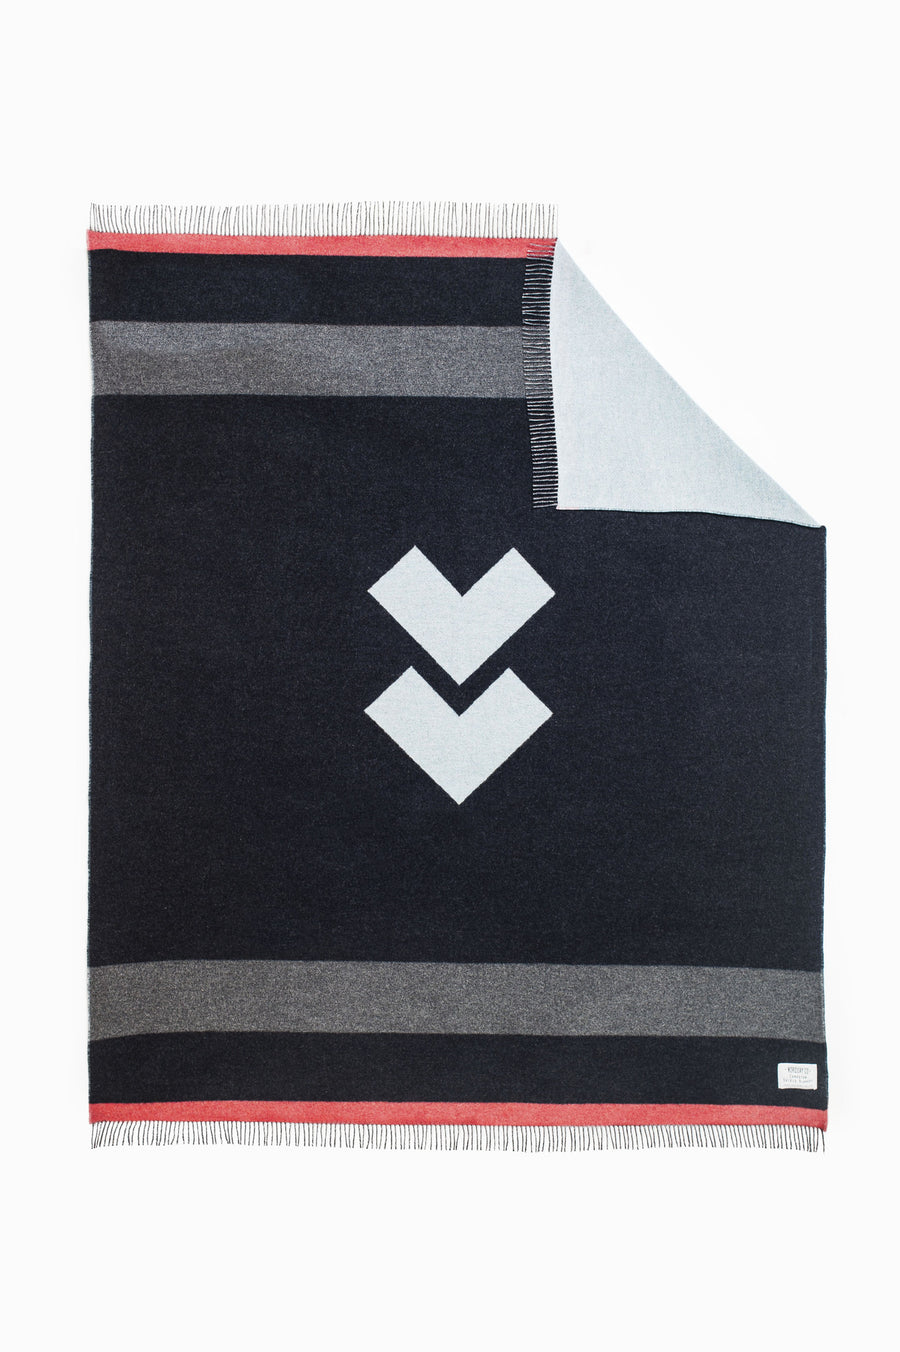 Canadian Shield Blanket // MARINE